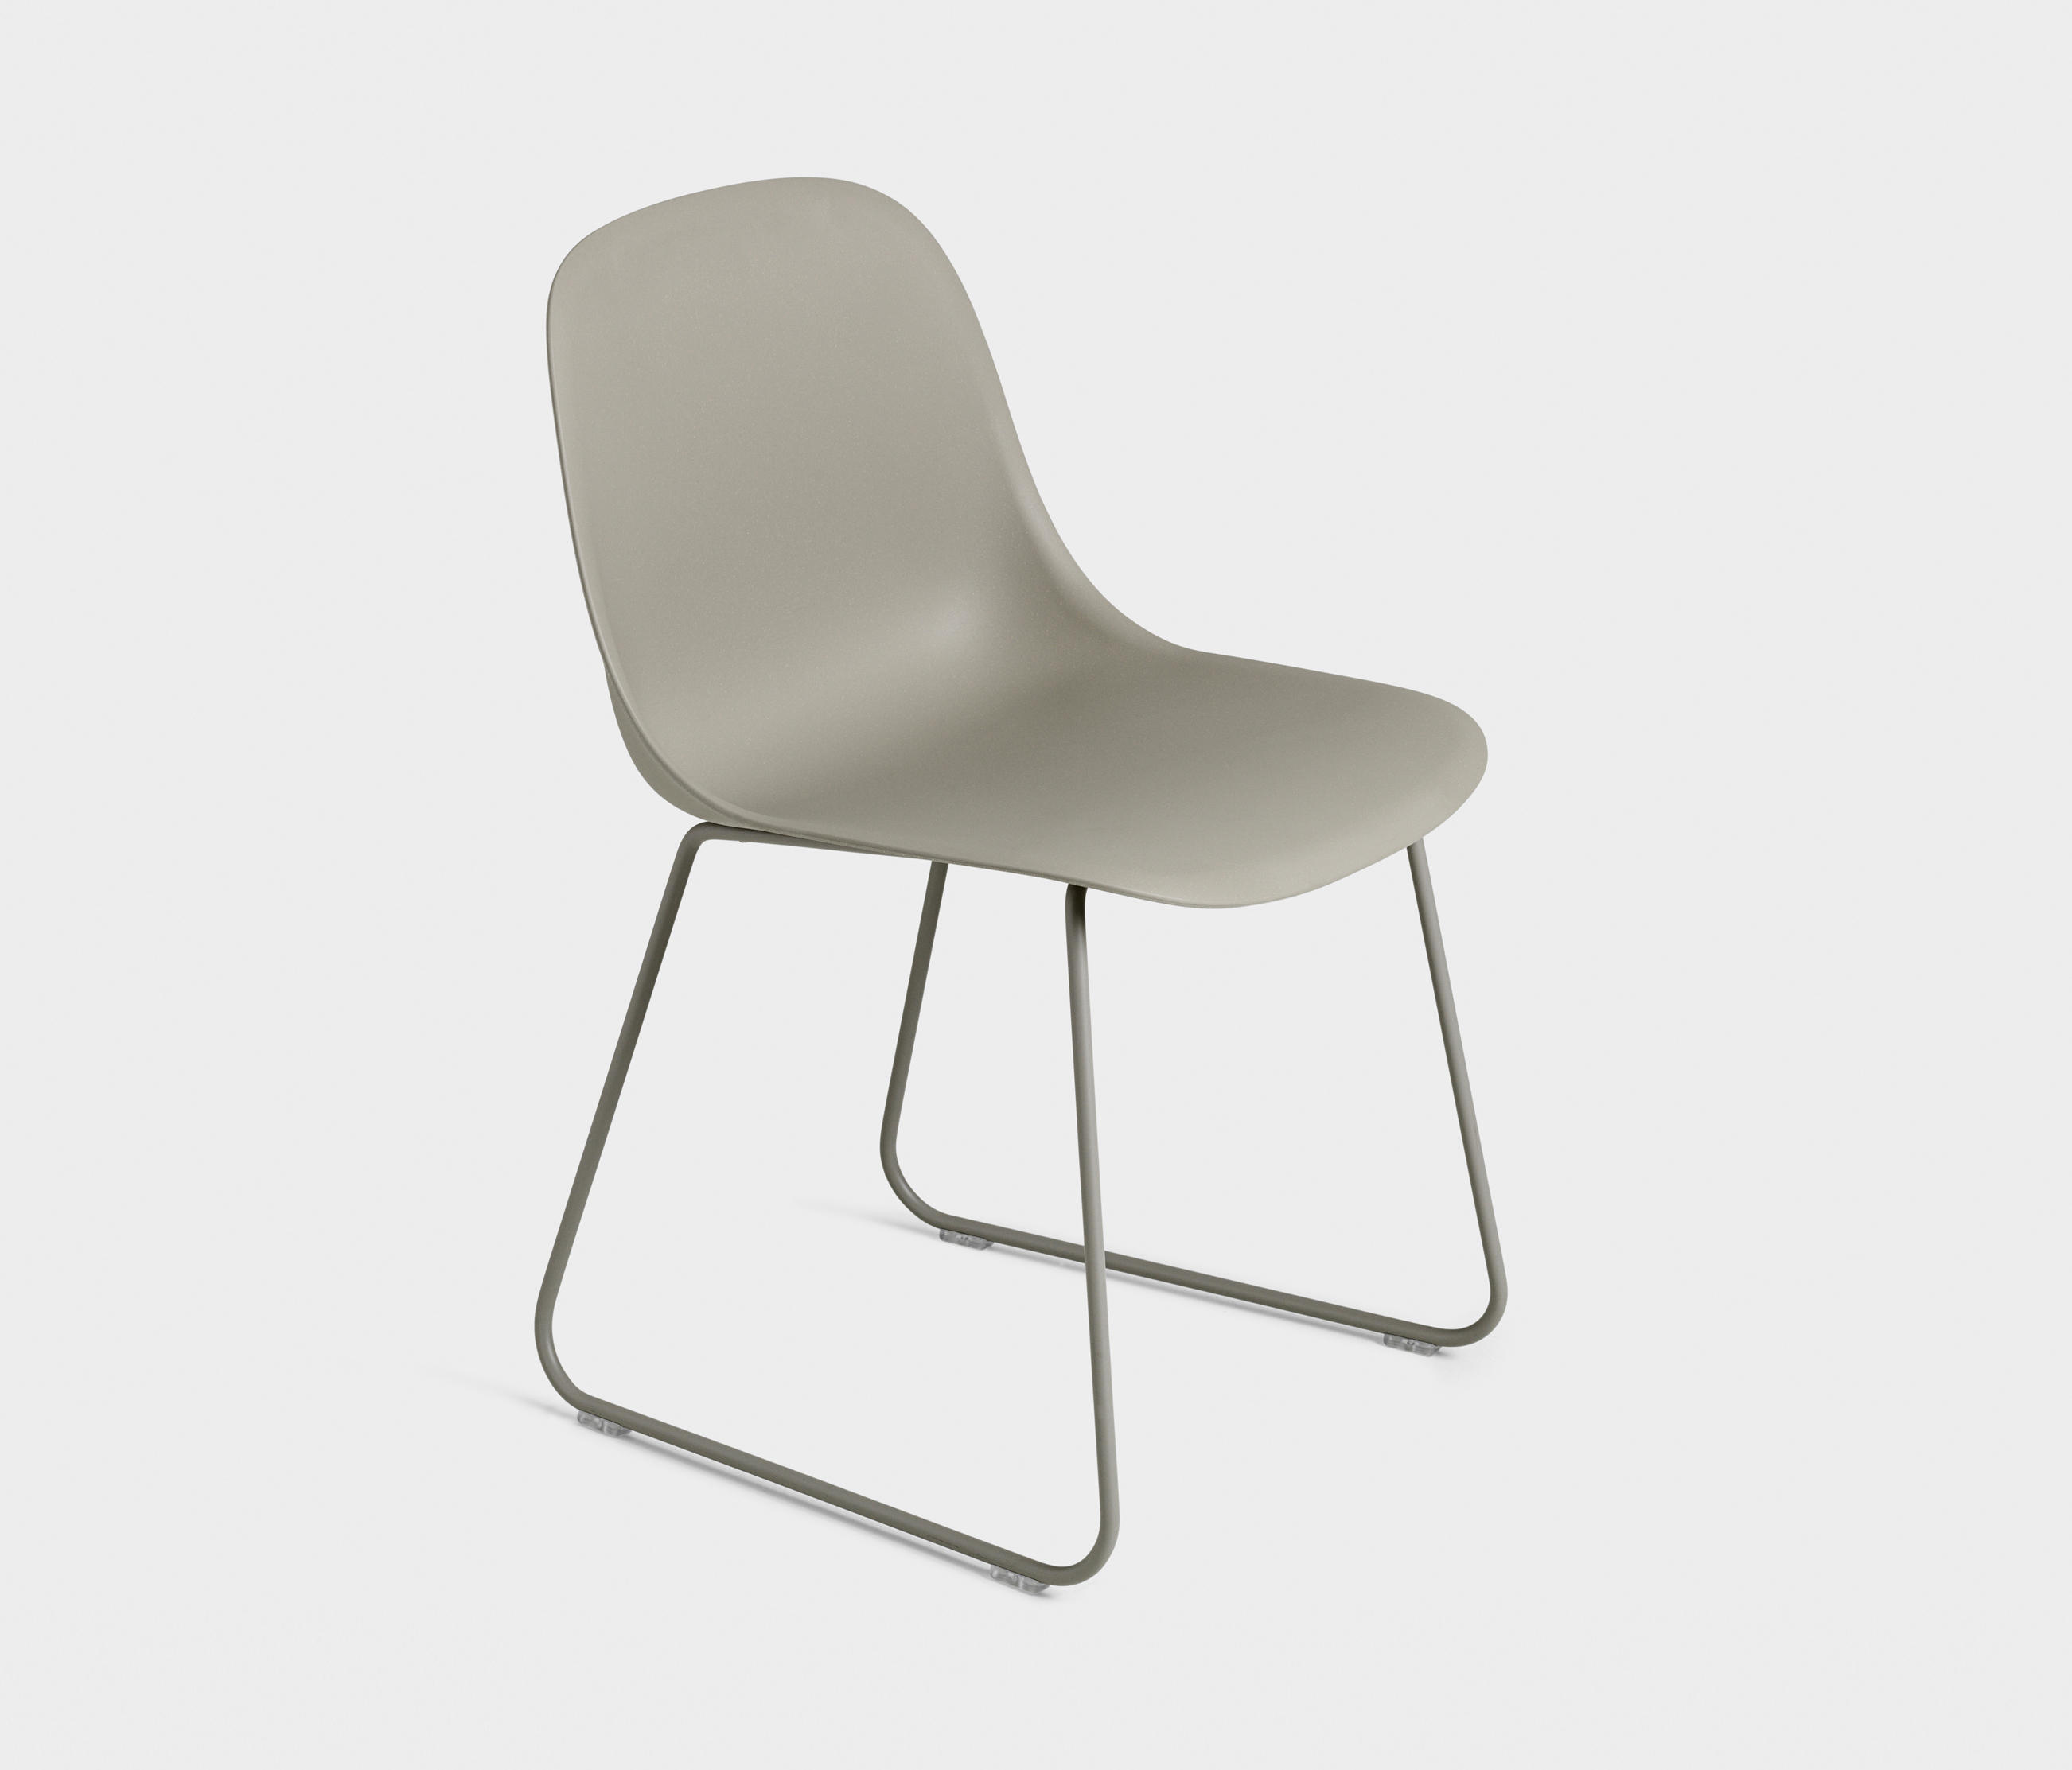 fiber side chair sled base chairs from muuto architonic. Black Bedroom Furniture Sets. Home Design Ideas